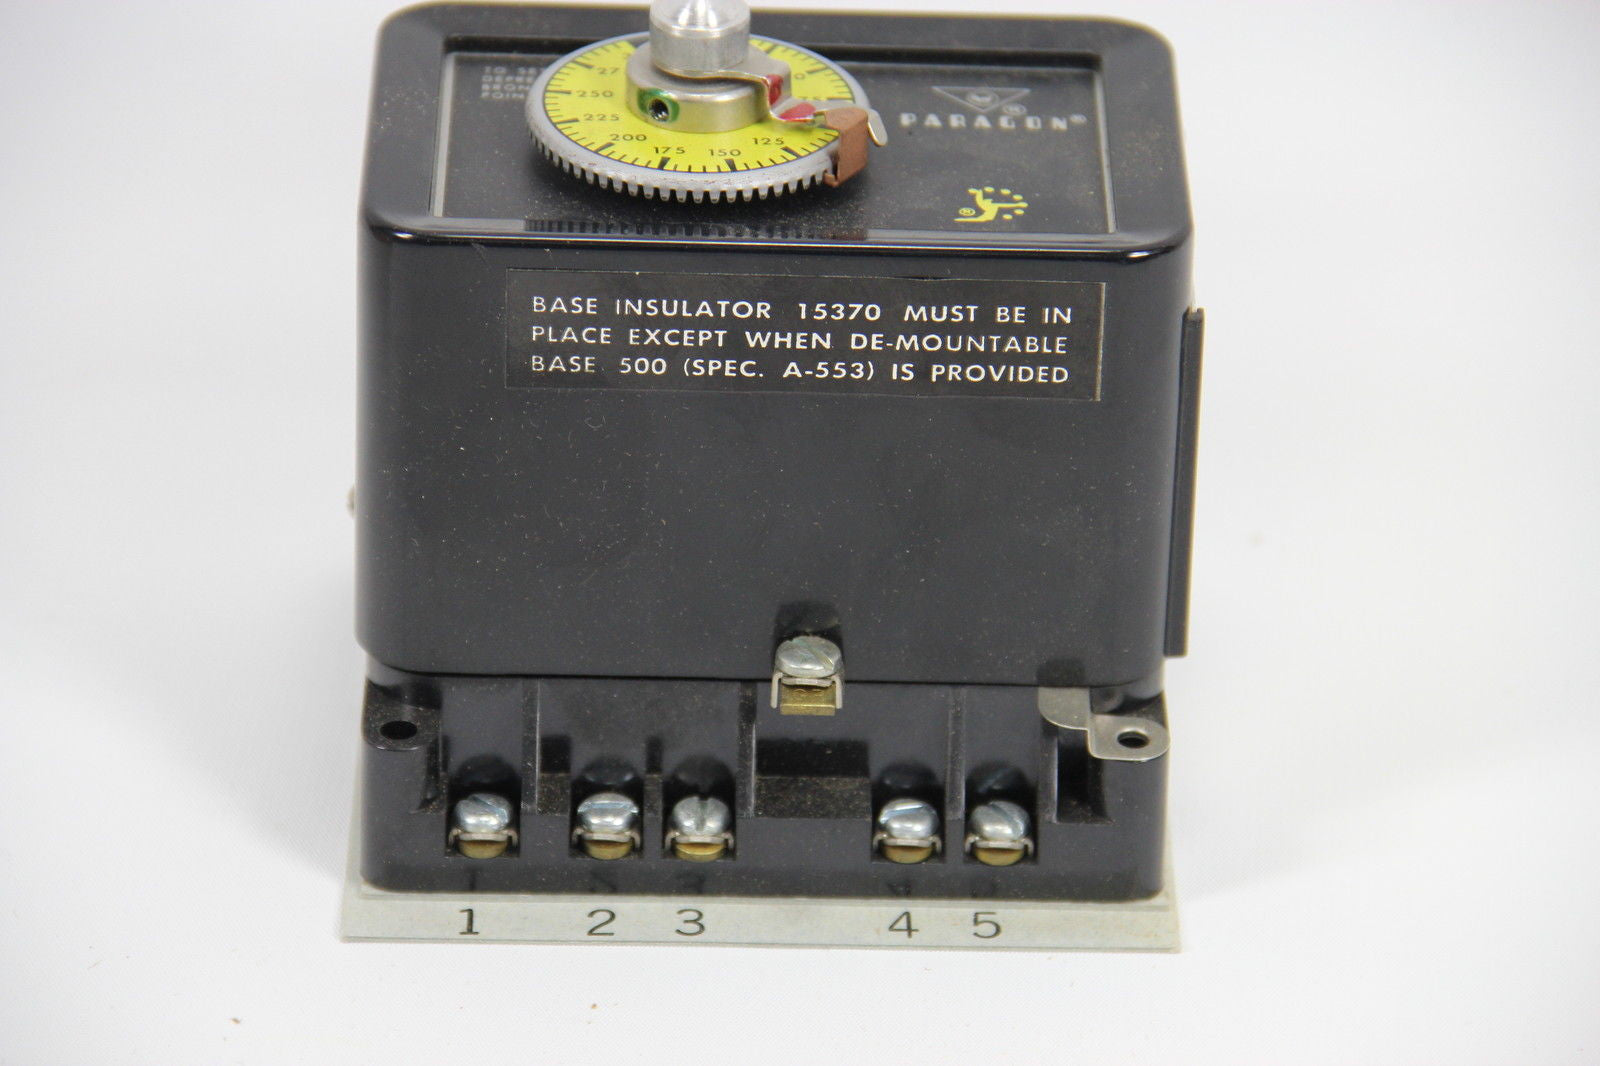 AMF Paragon 502-142-3 Off Delay Timer Automatic Reset Timing Motor ...